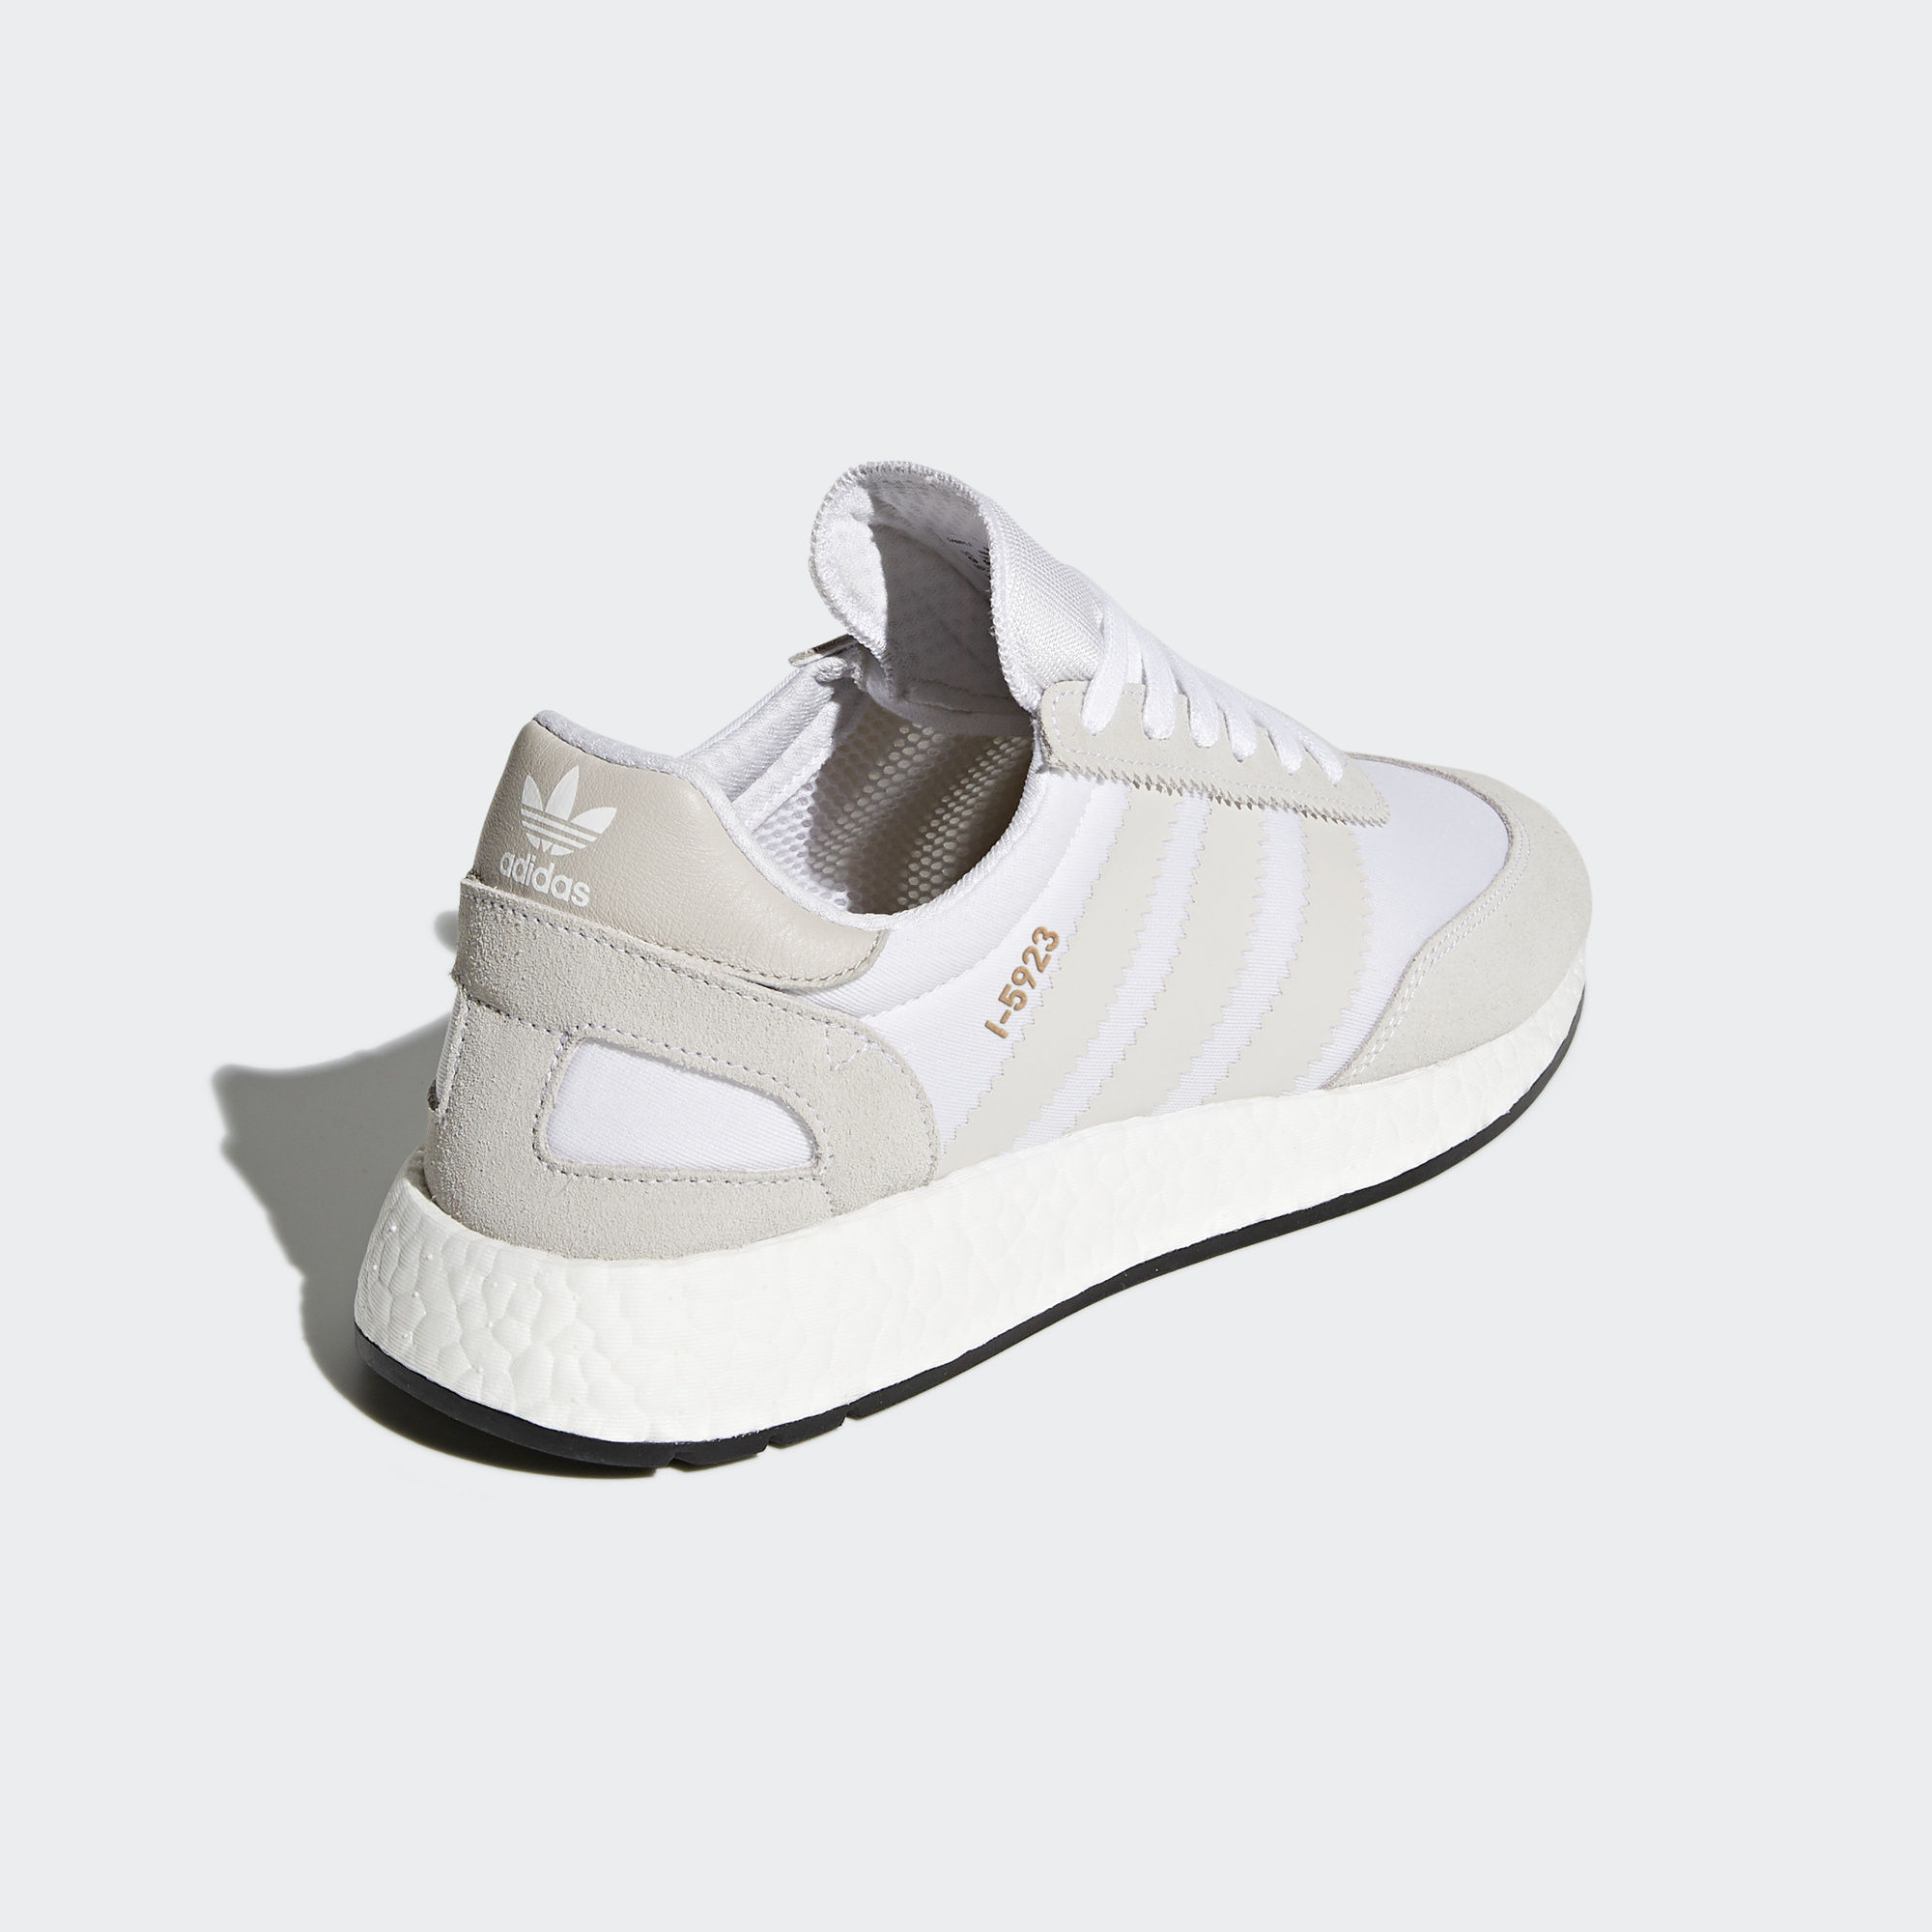 Adidas Stan Smith blanco blanco Smith hombre Lace Up Trainers  e0990c ff7a3d